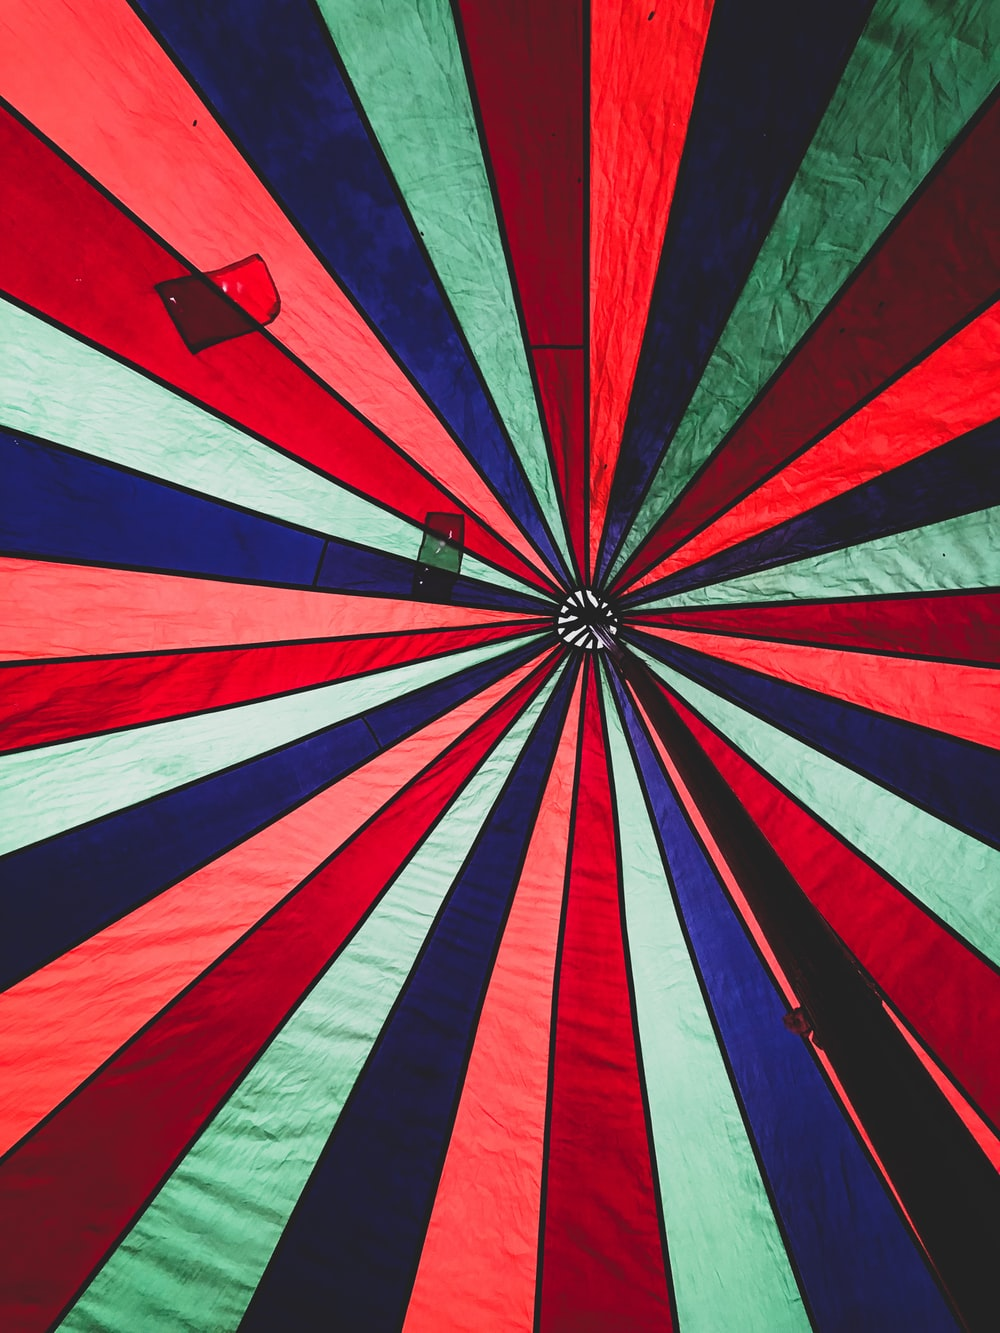 red white and blue striped umbrella